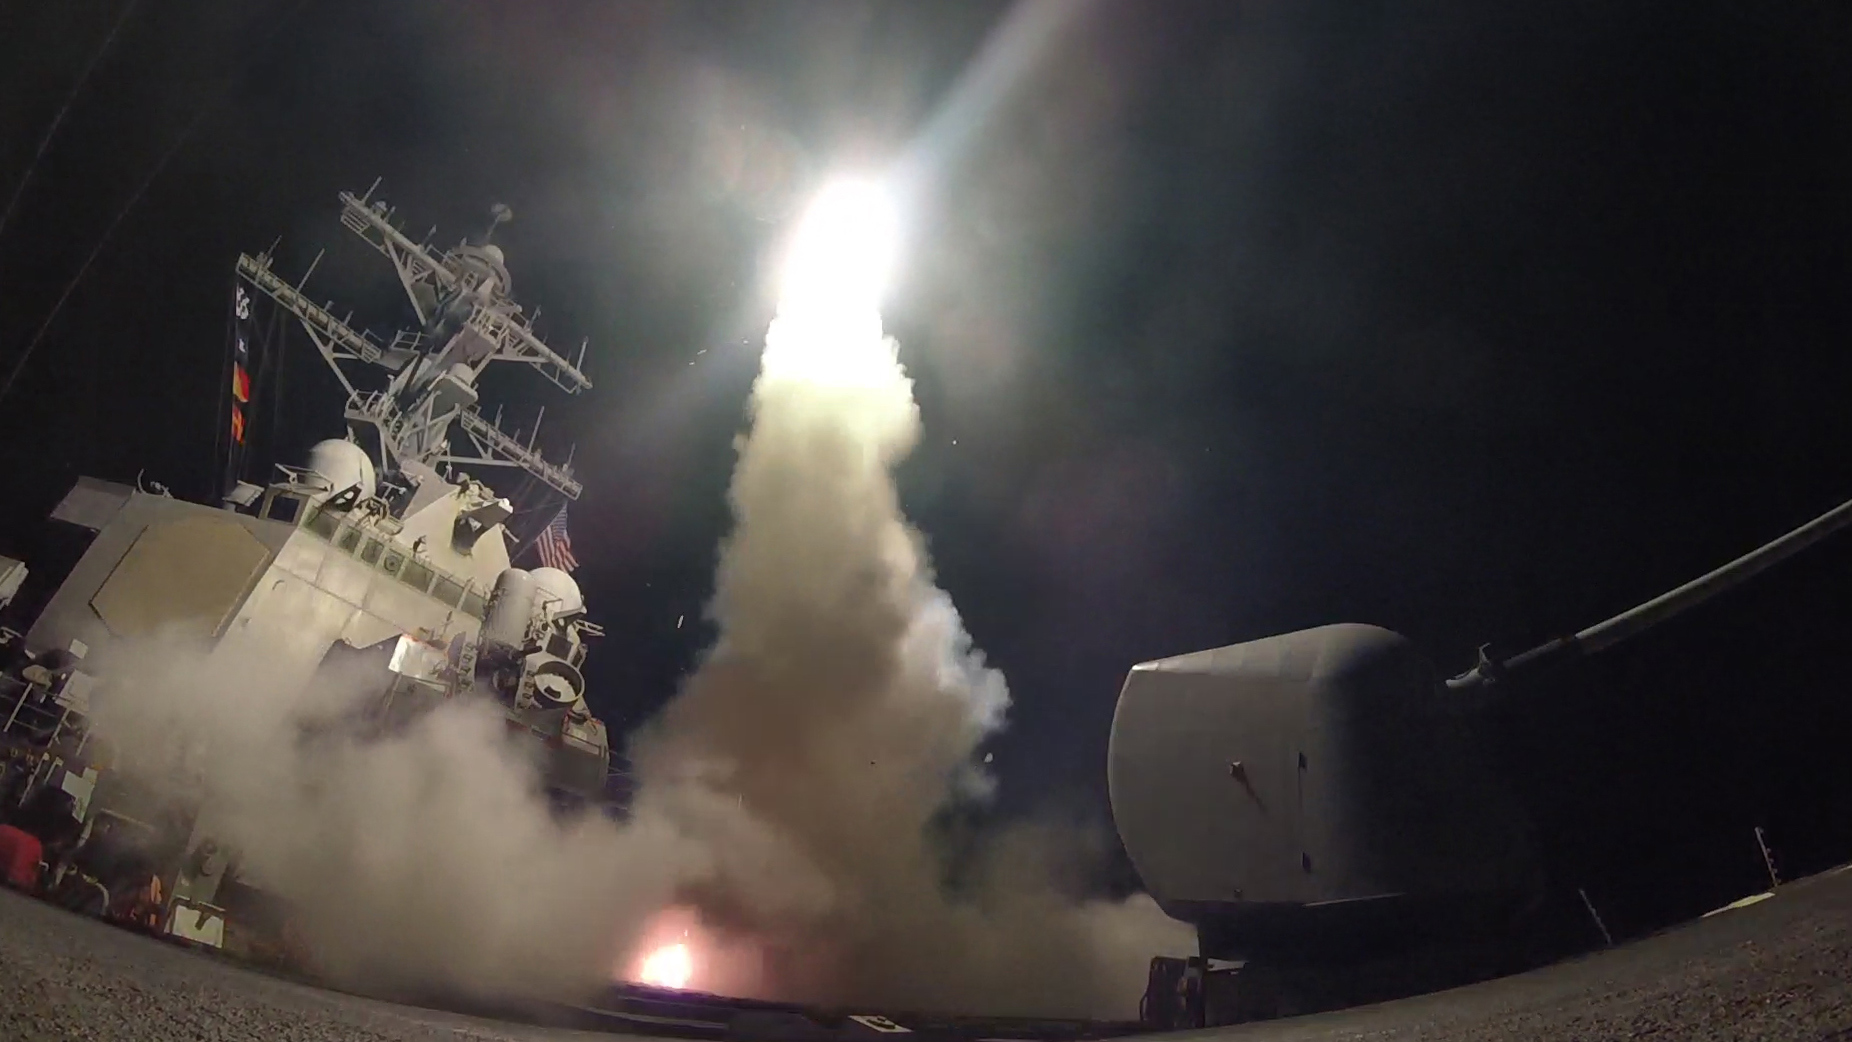 A U.S. guided missile destroyer fires a Tomahawk cruise missile at a Syrian target. (U.S. Navy photo via Getty Images)